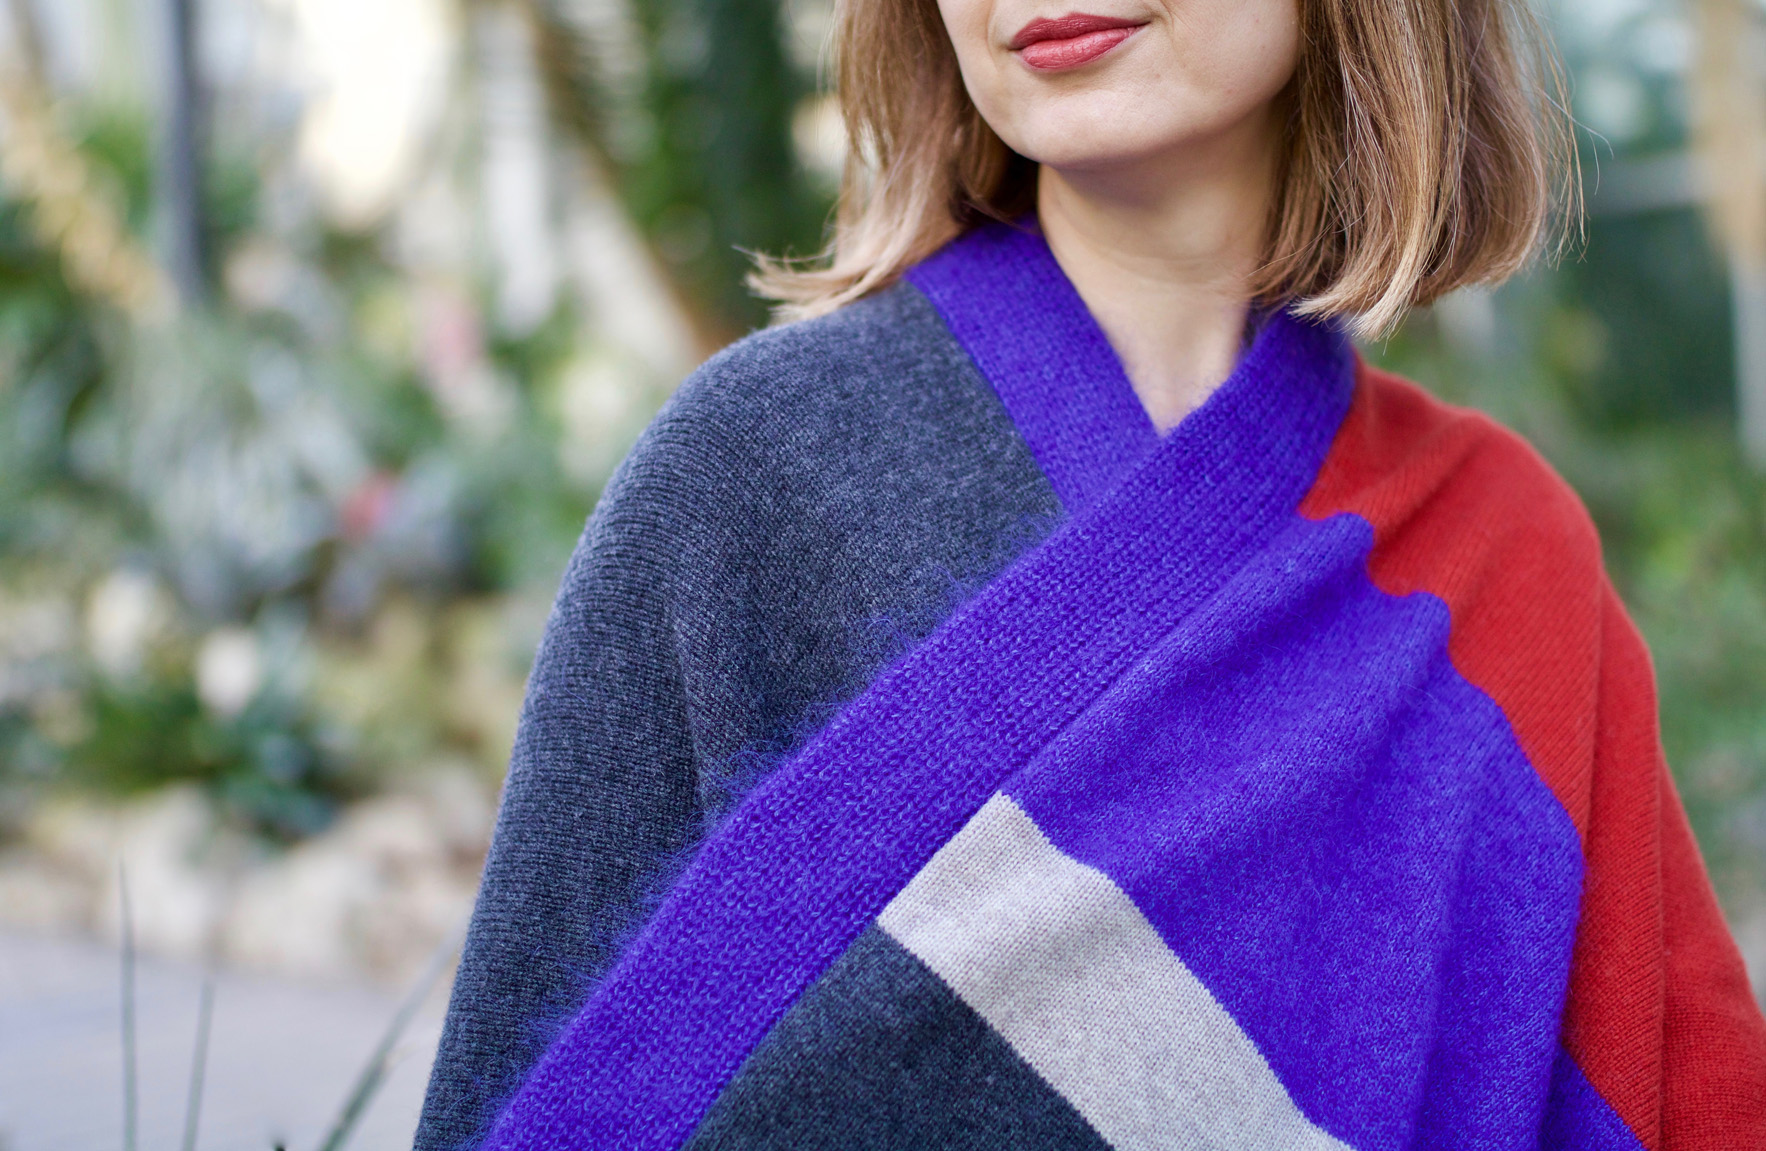 greenlooksgreat-ekyog-ethical-fashion-poncho-detail